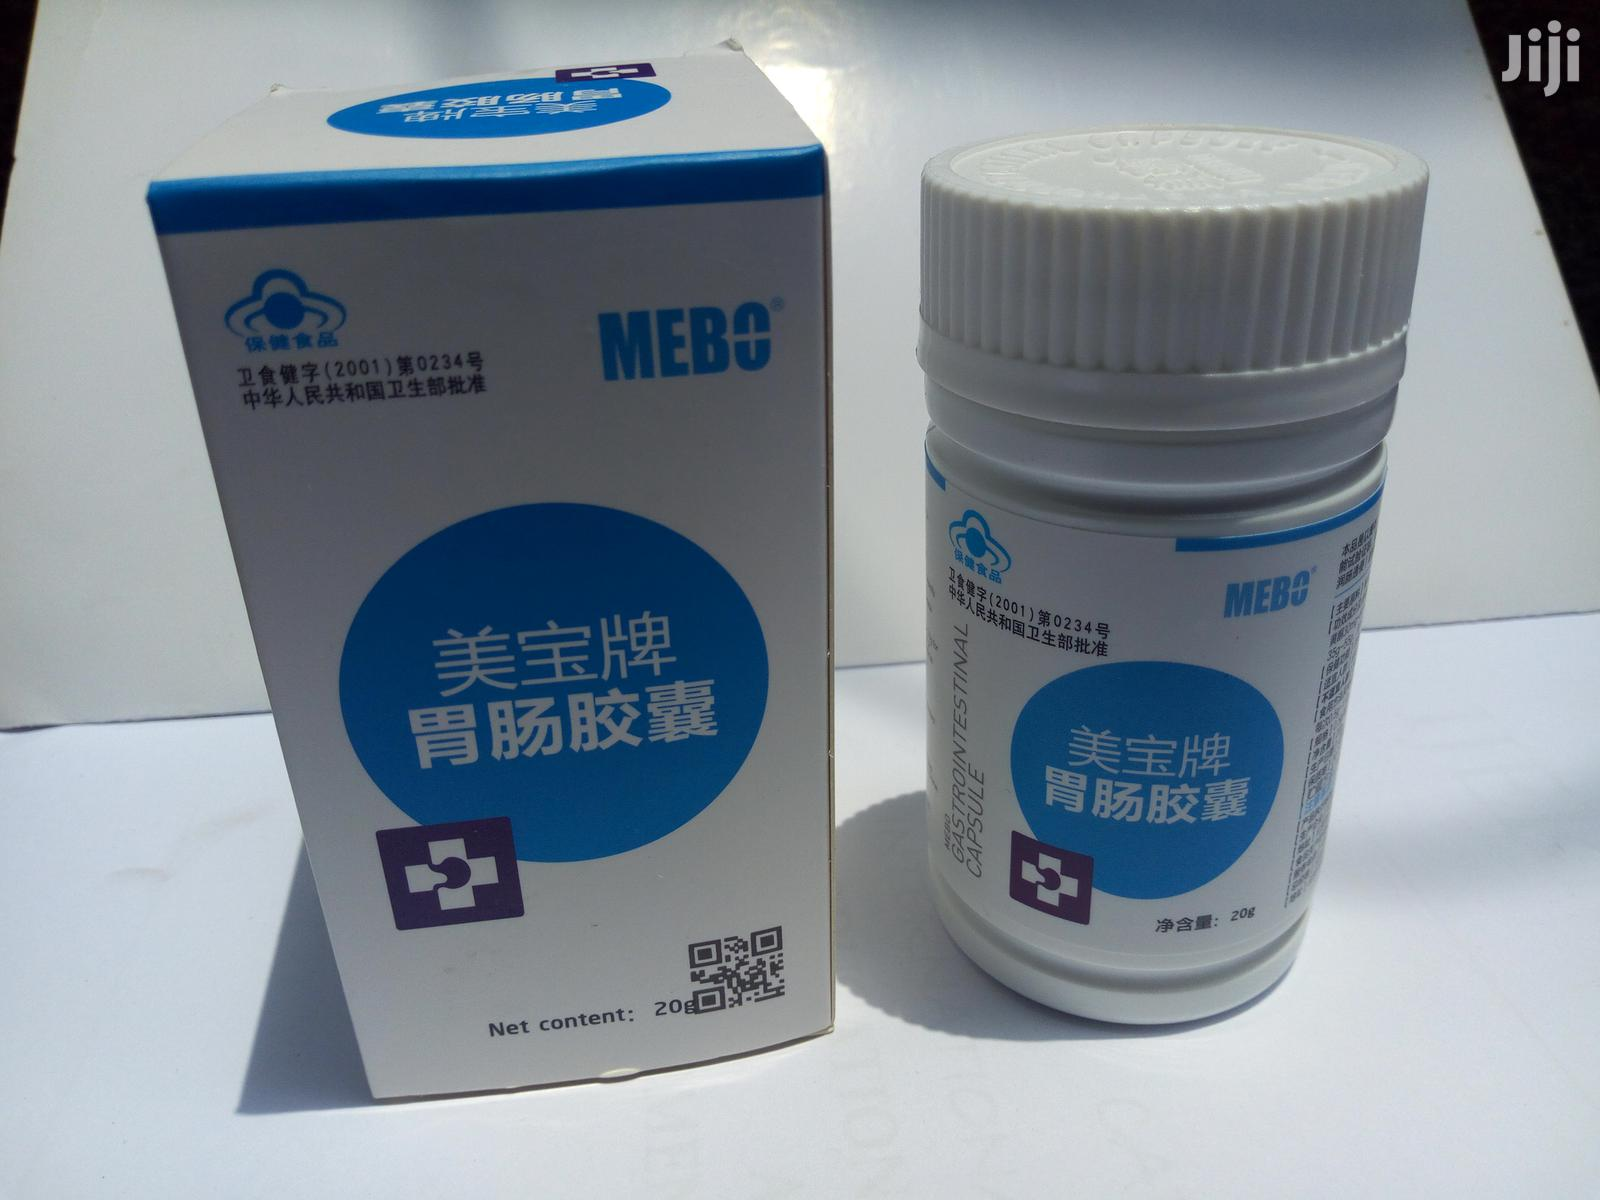 Mebo Gi Cure Ulcer Permanently in 21 Days Without Side Effects.